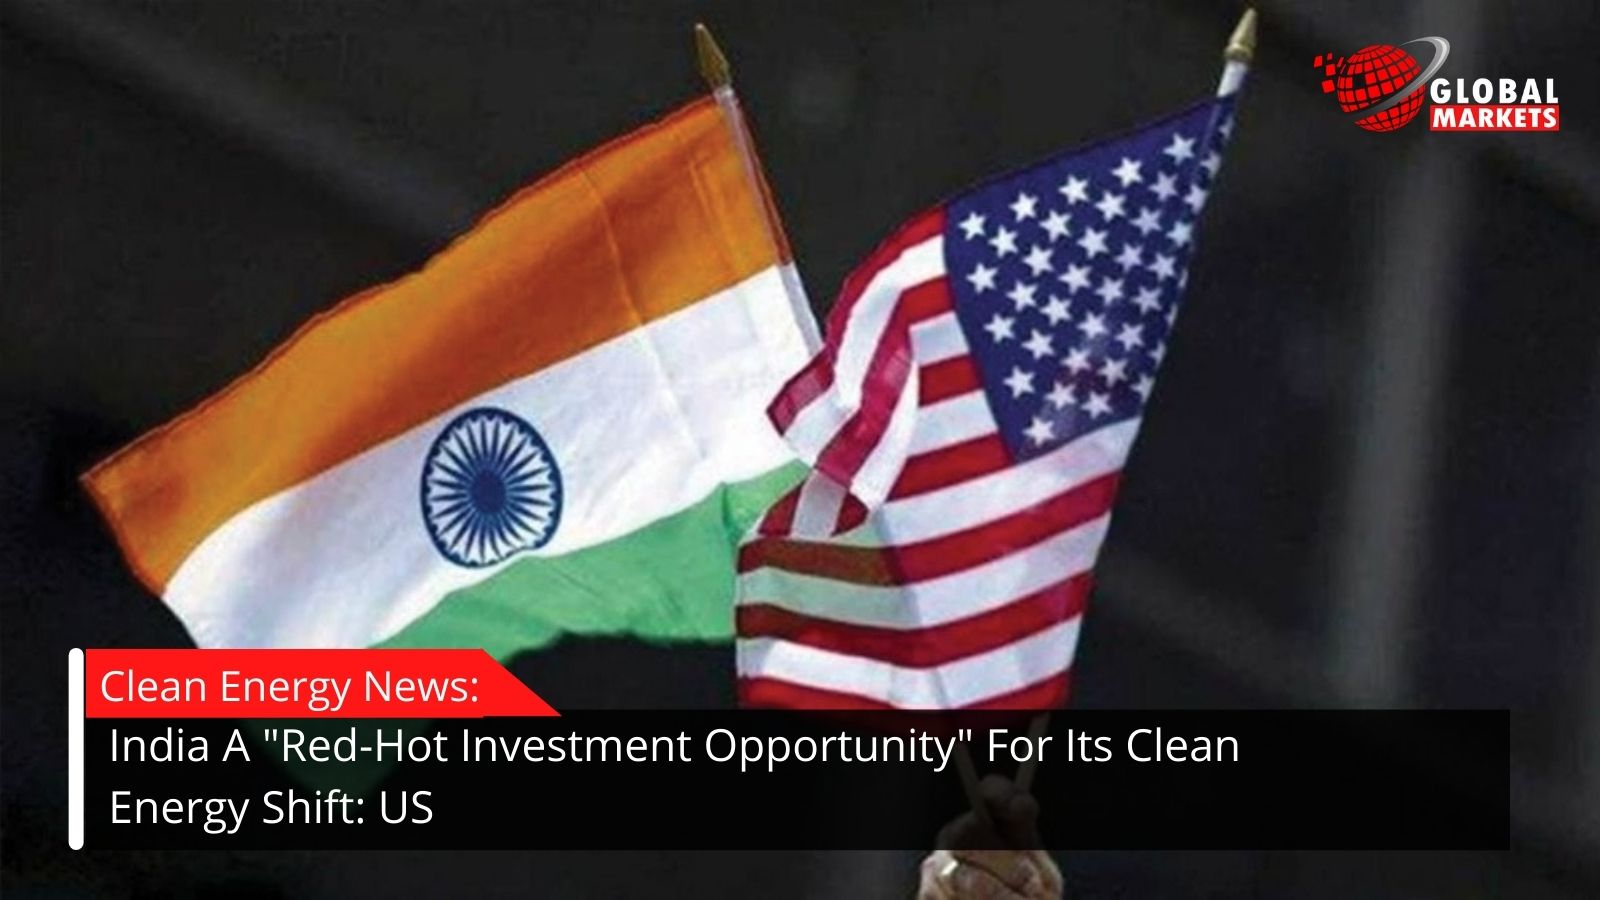 Intensely hot Investment Opportunity For Clean Energy Shift at India